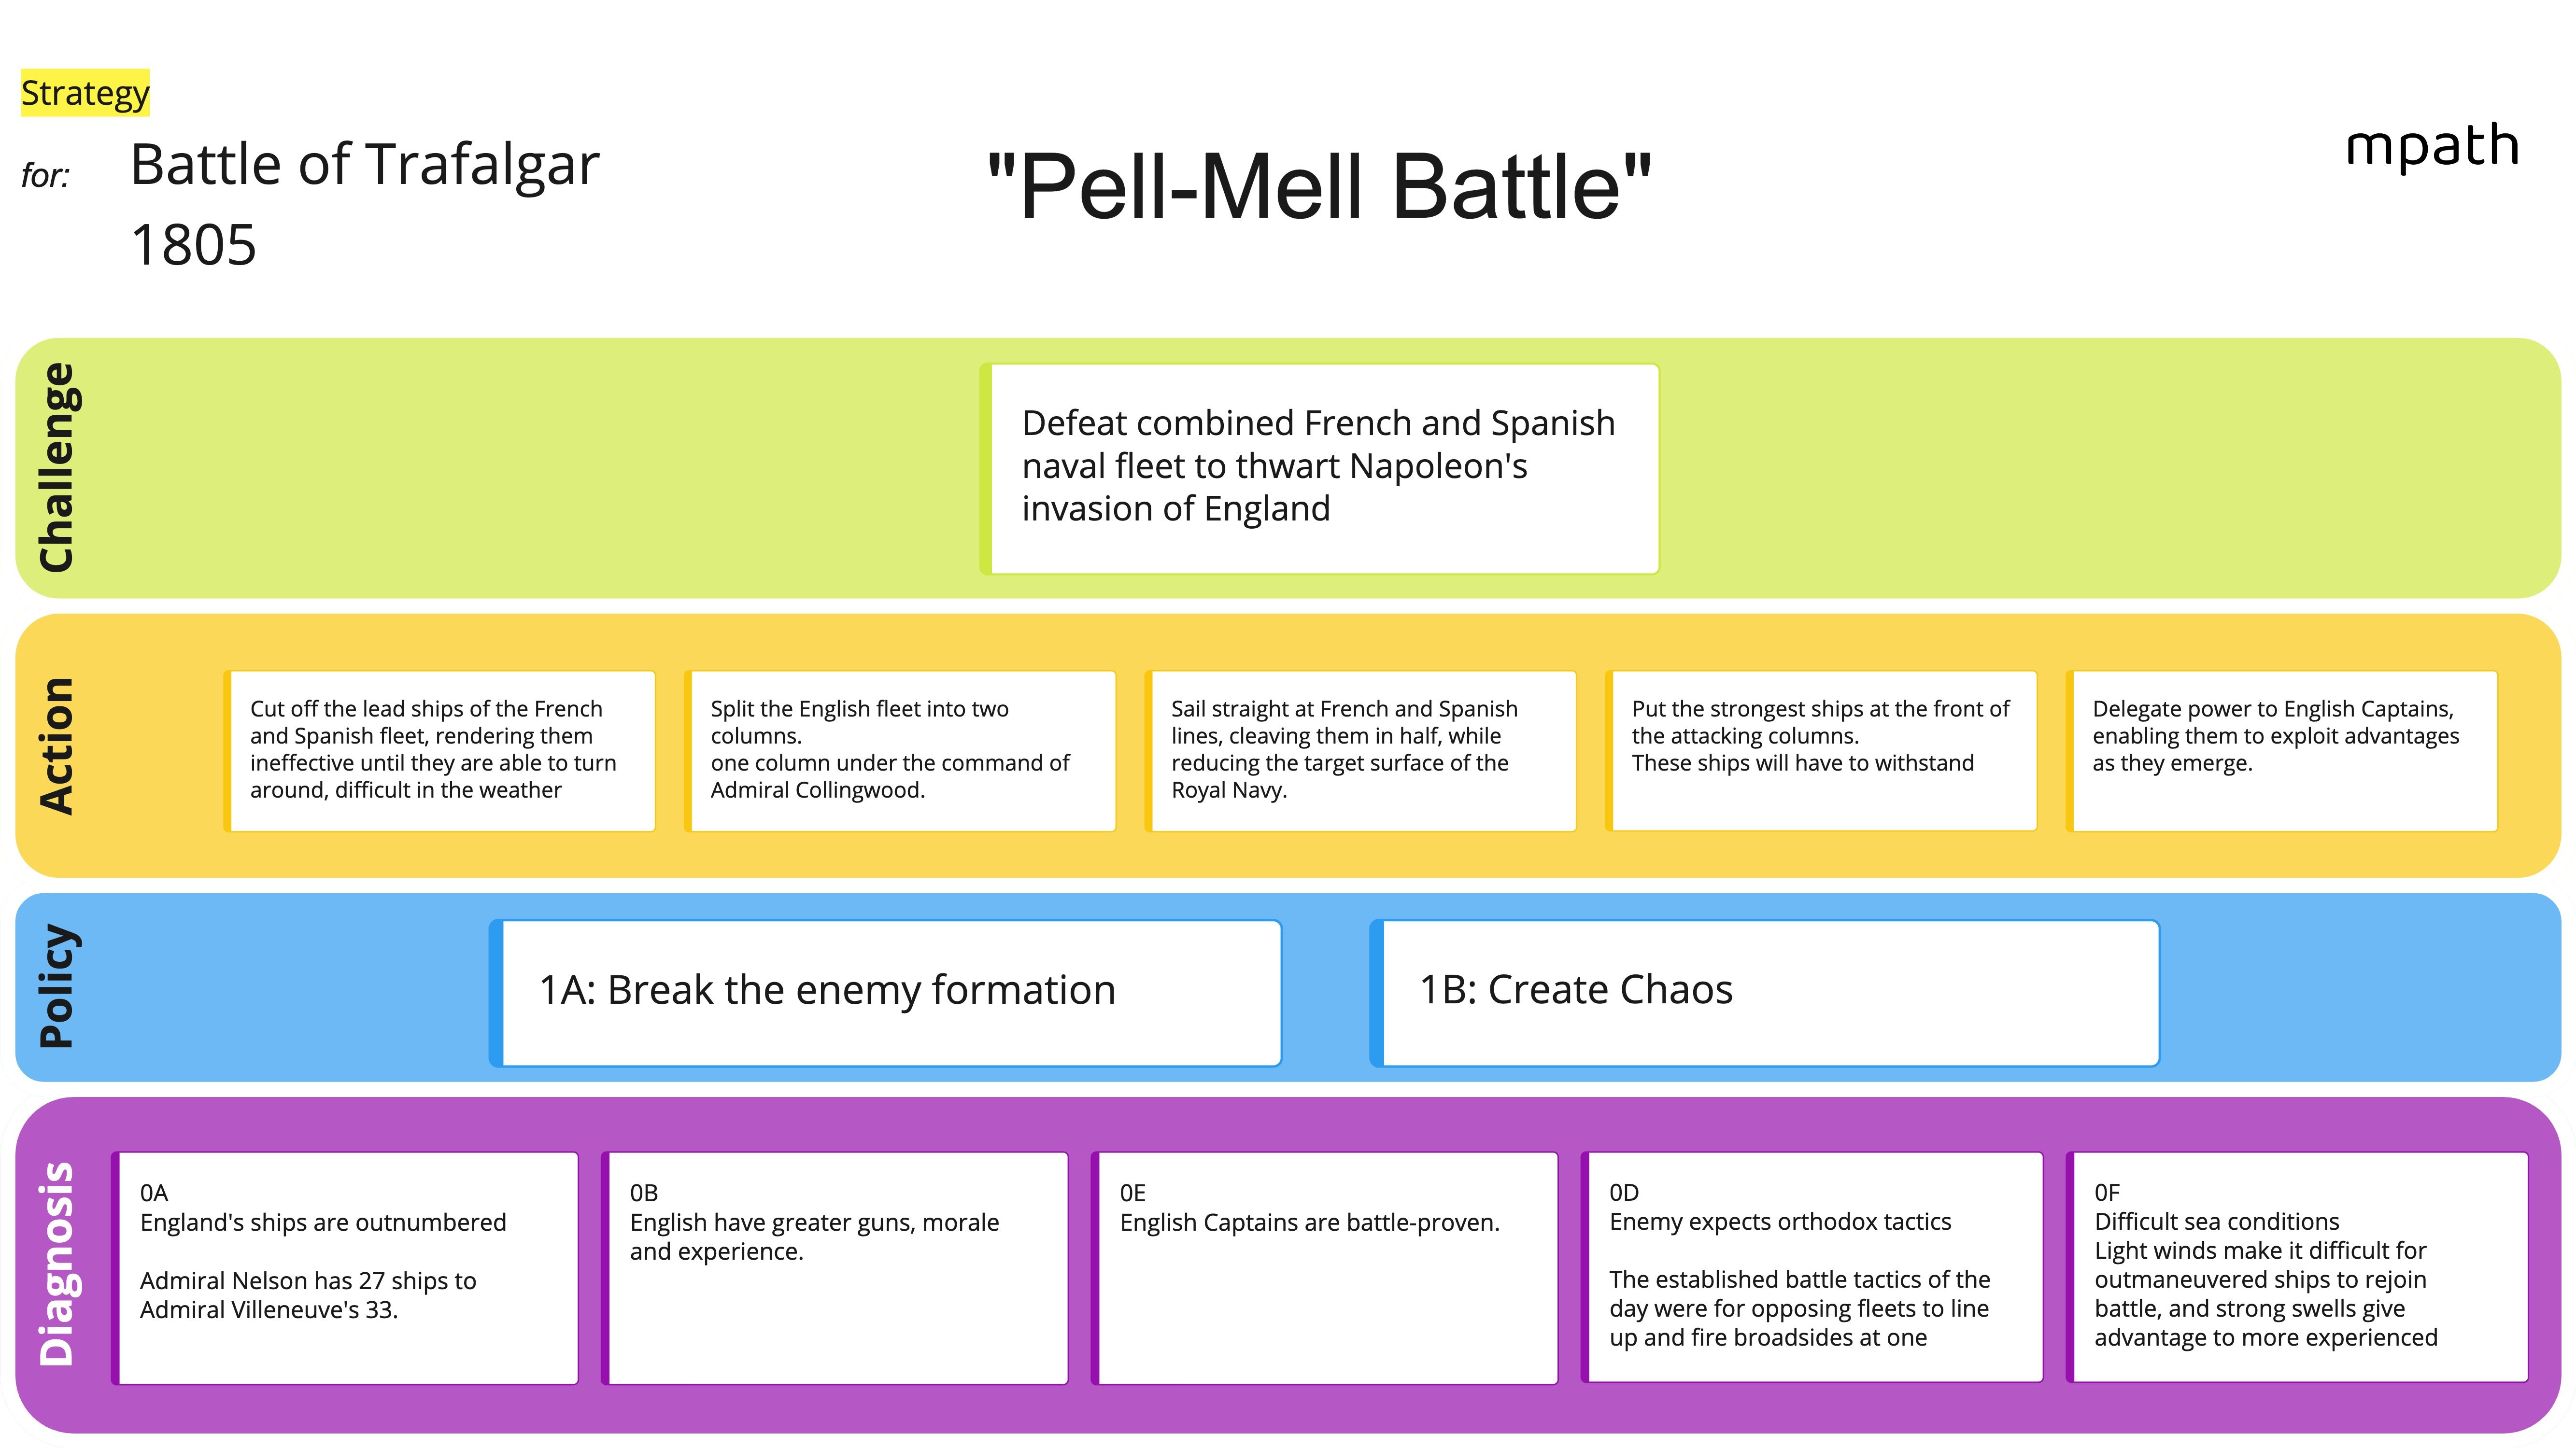 Strategy Canvas: Battle of Trafalgar